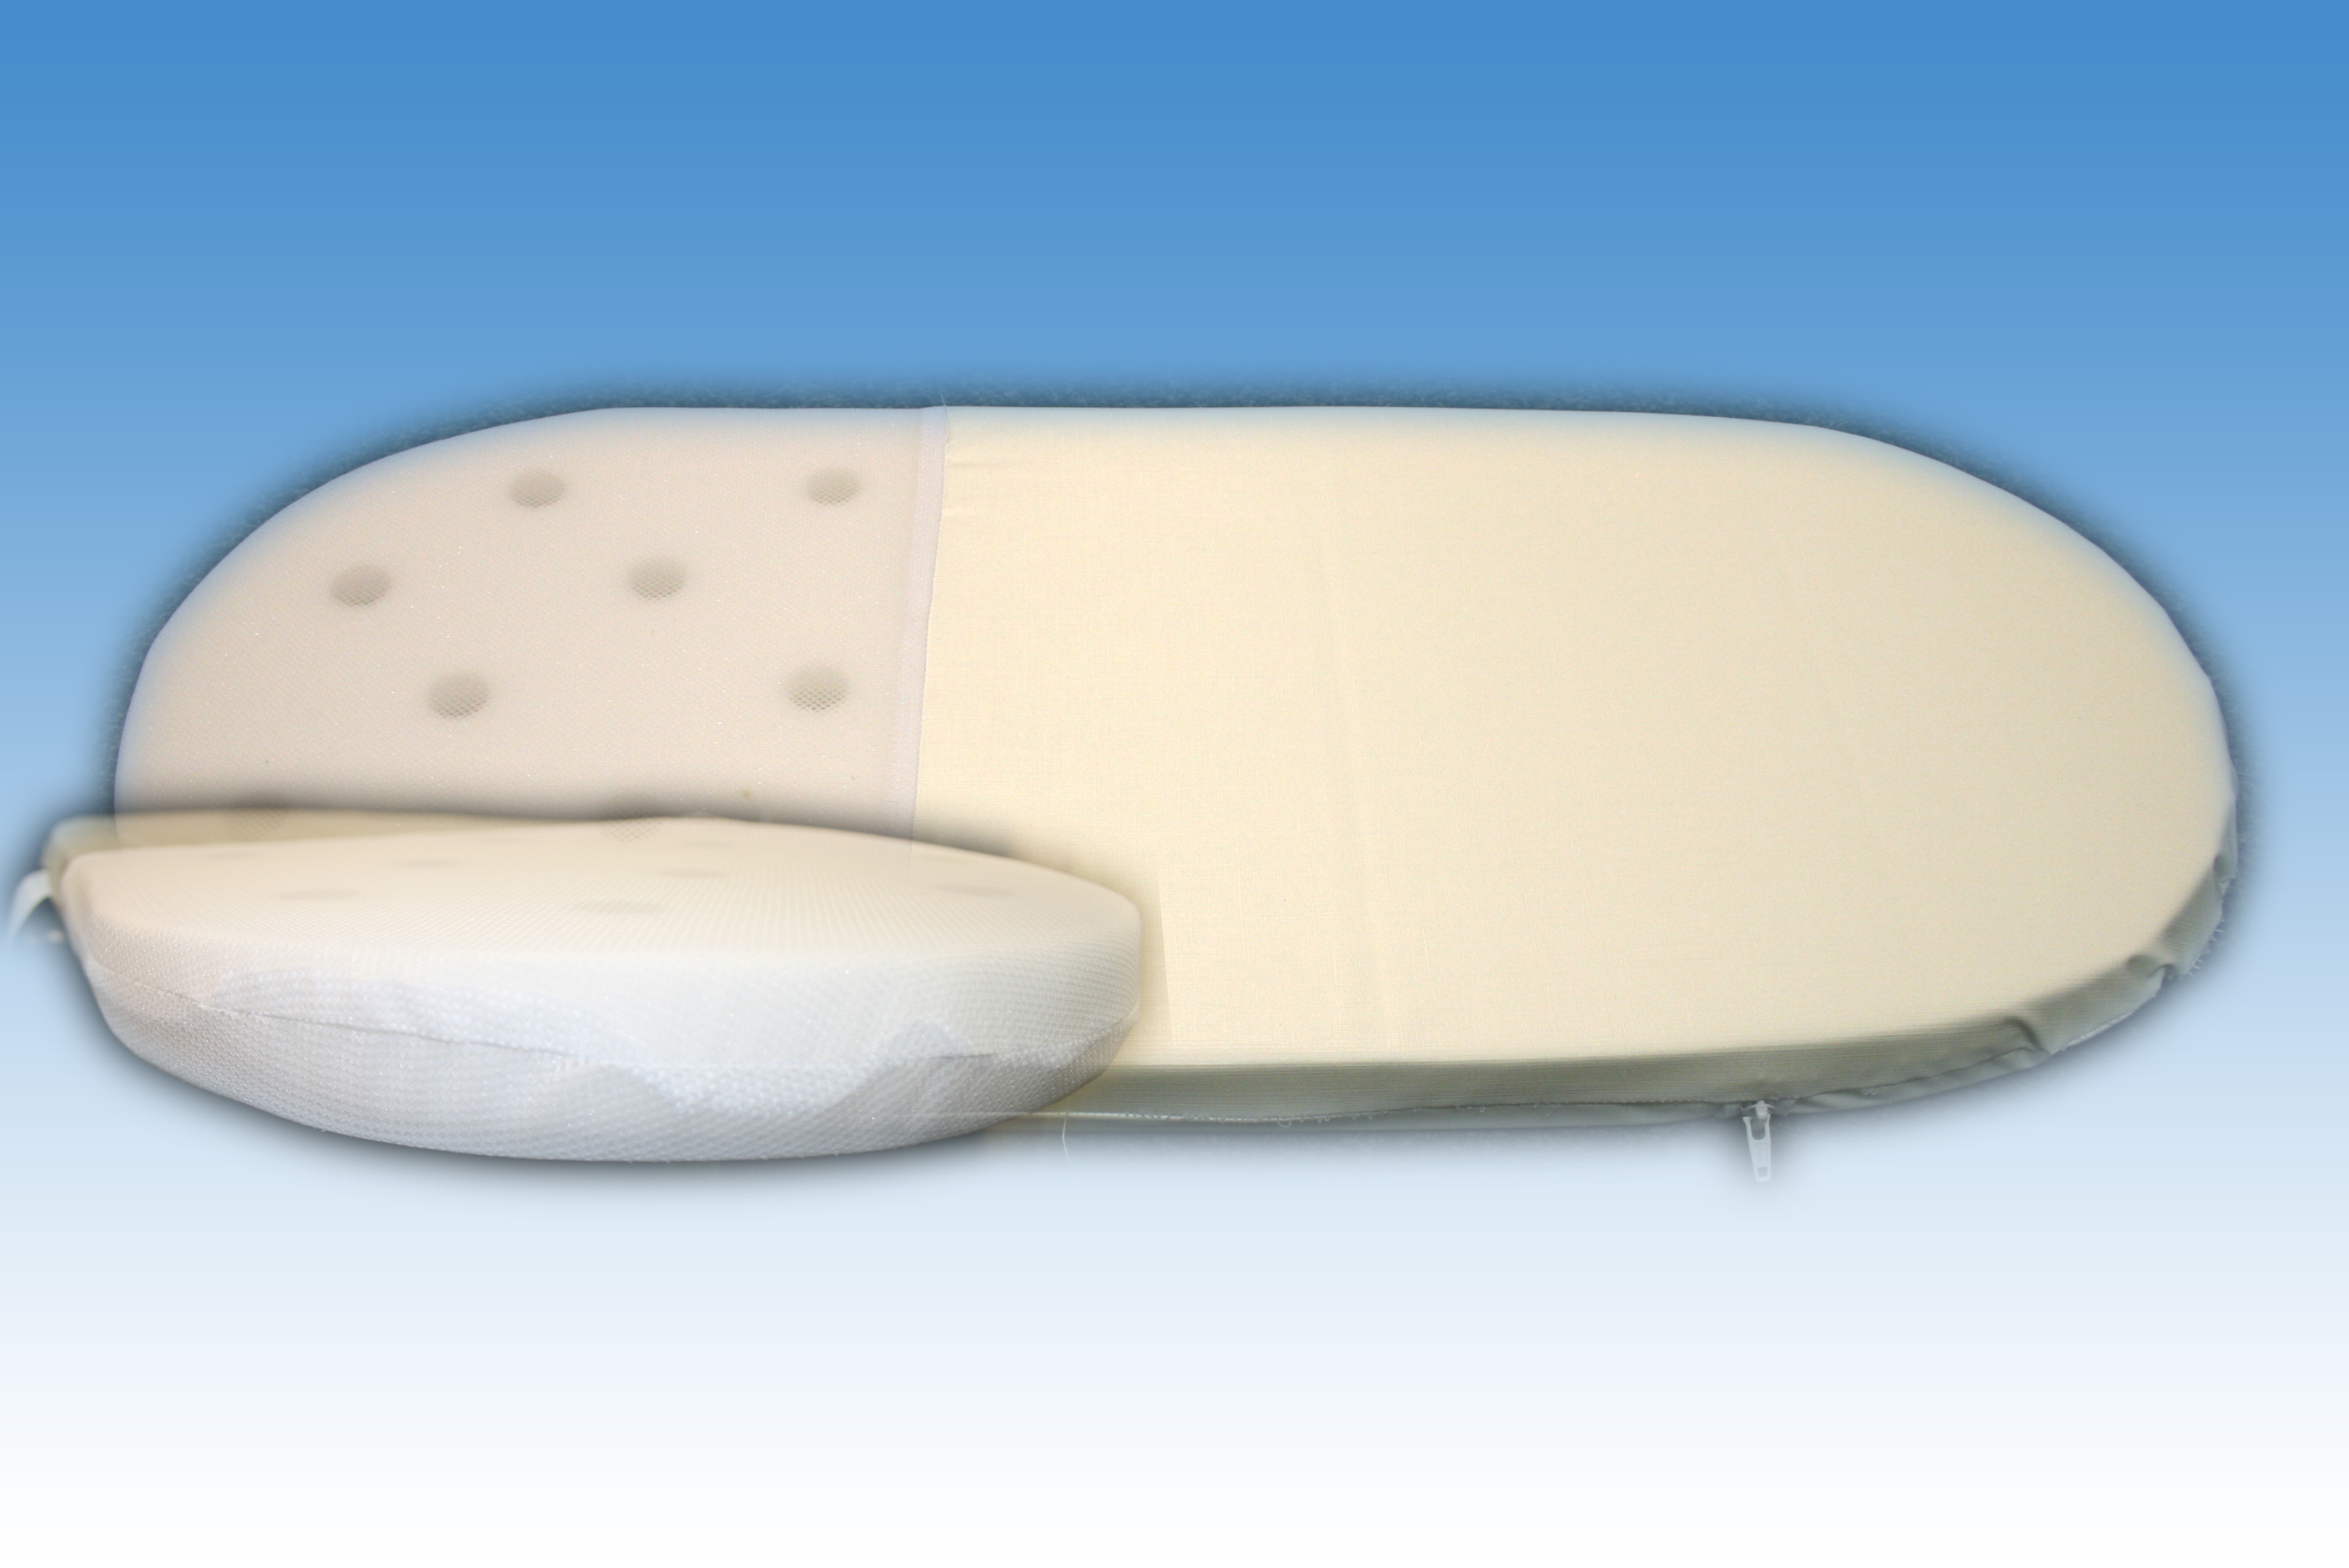 Waterproof Mattresses Disabled Custom made foam mattress for prams, cribs & moses baskets ...